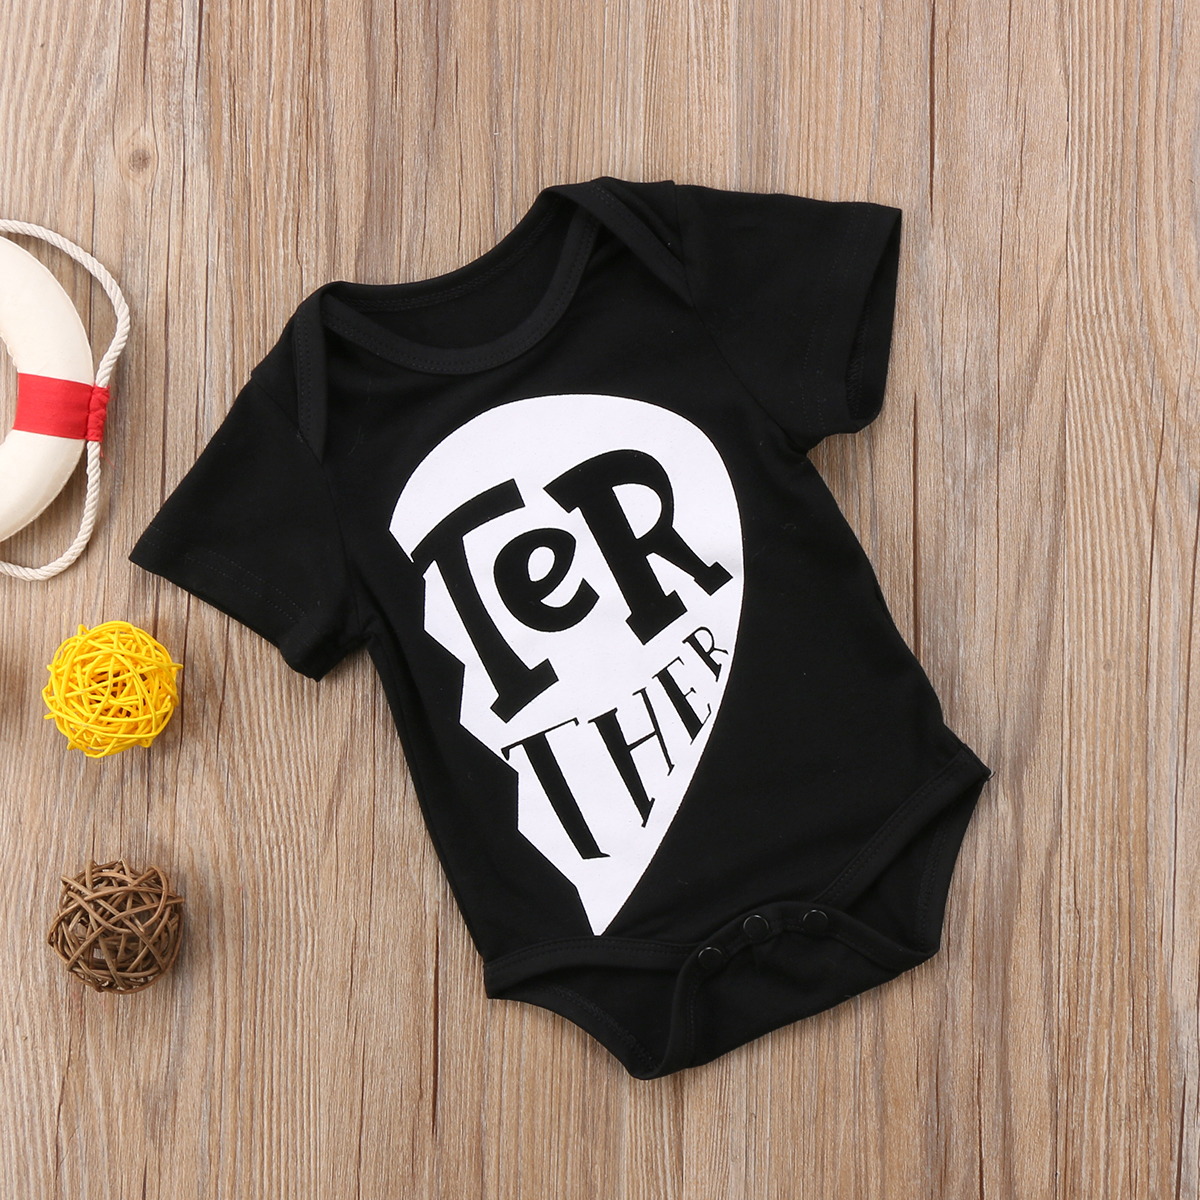 71c0e5b38dfb Kids Newborn Baby Boys Brother Sister Romper T Shirt Cotton Tops ...